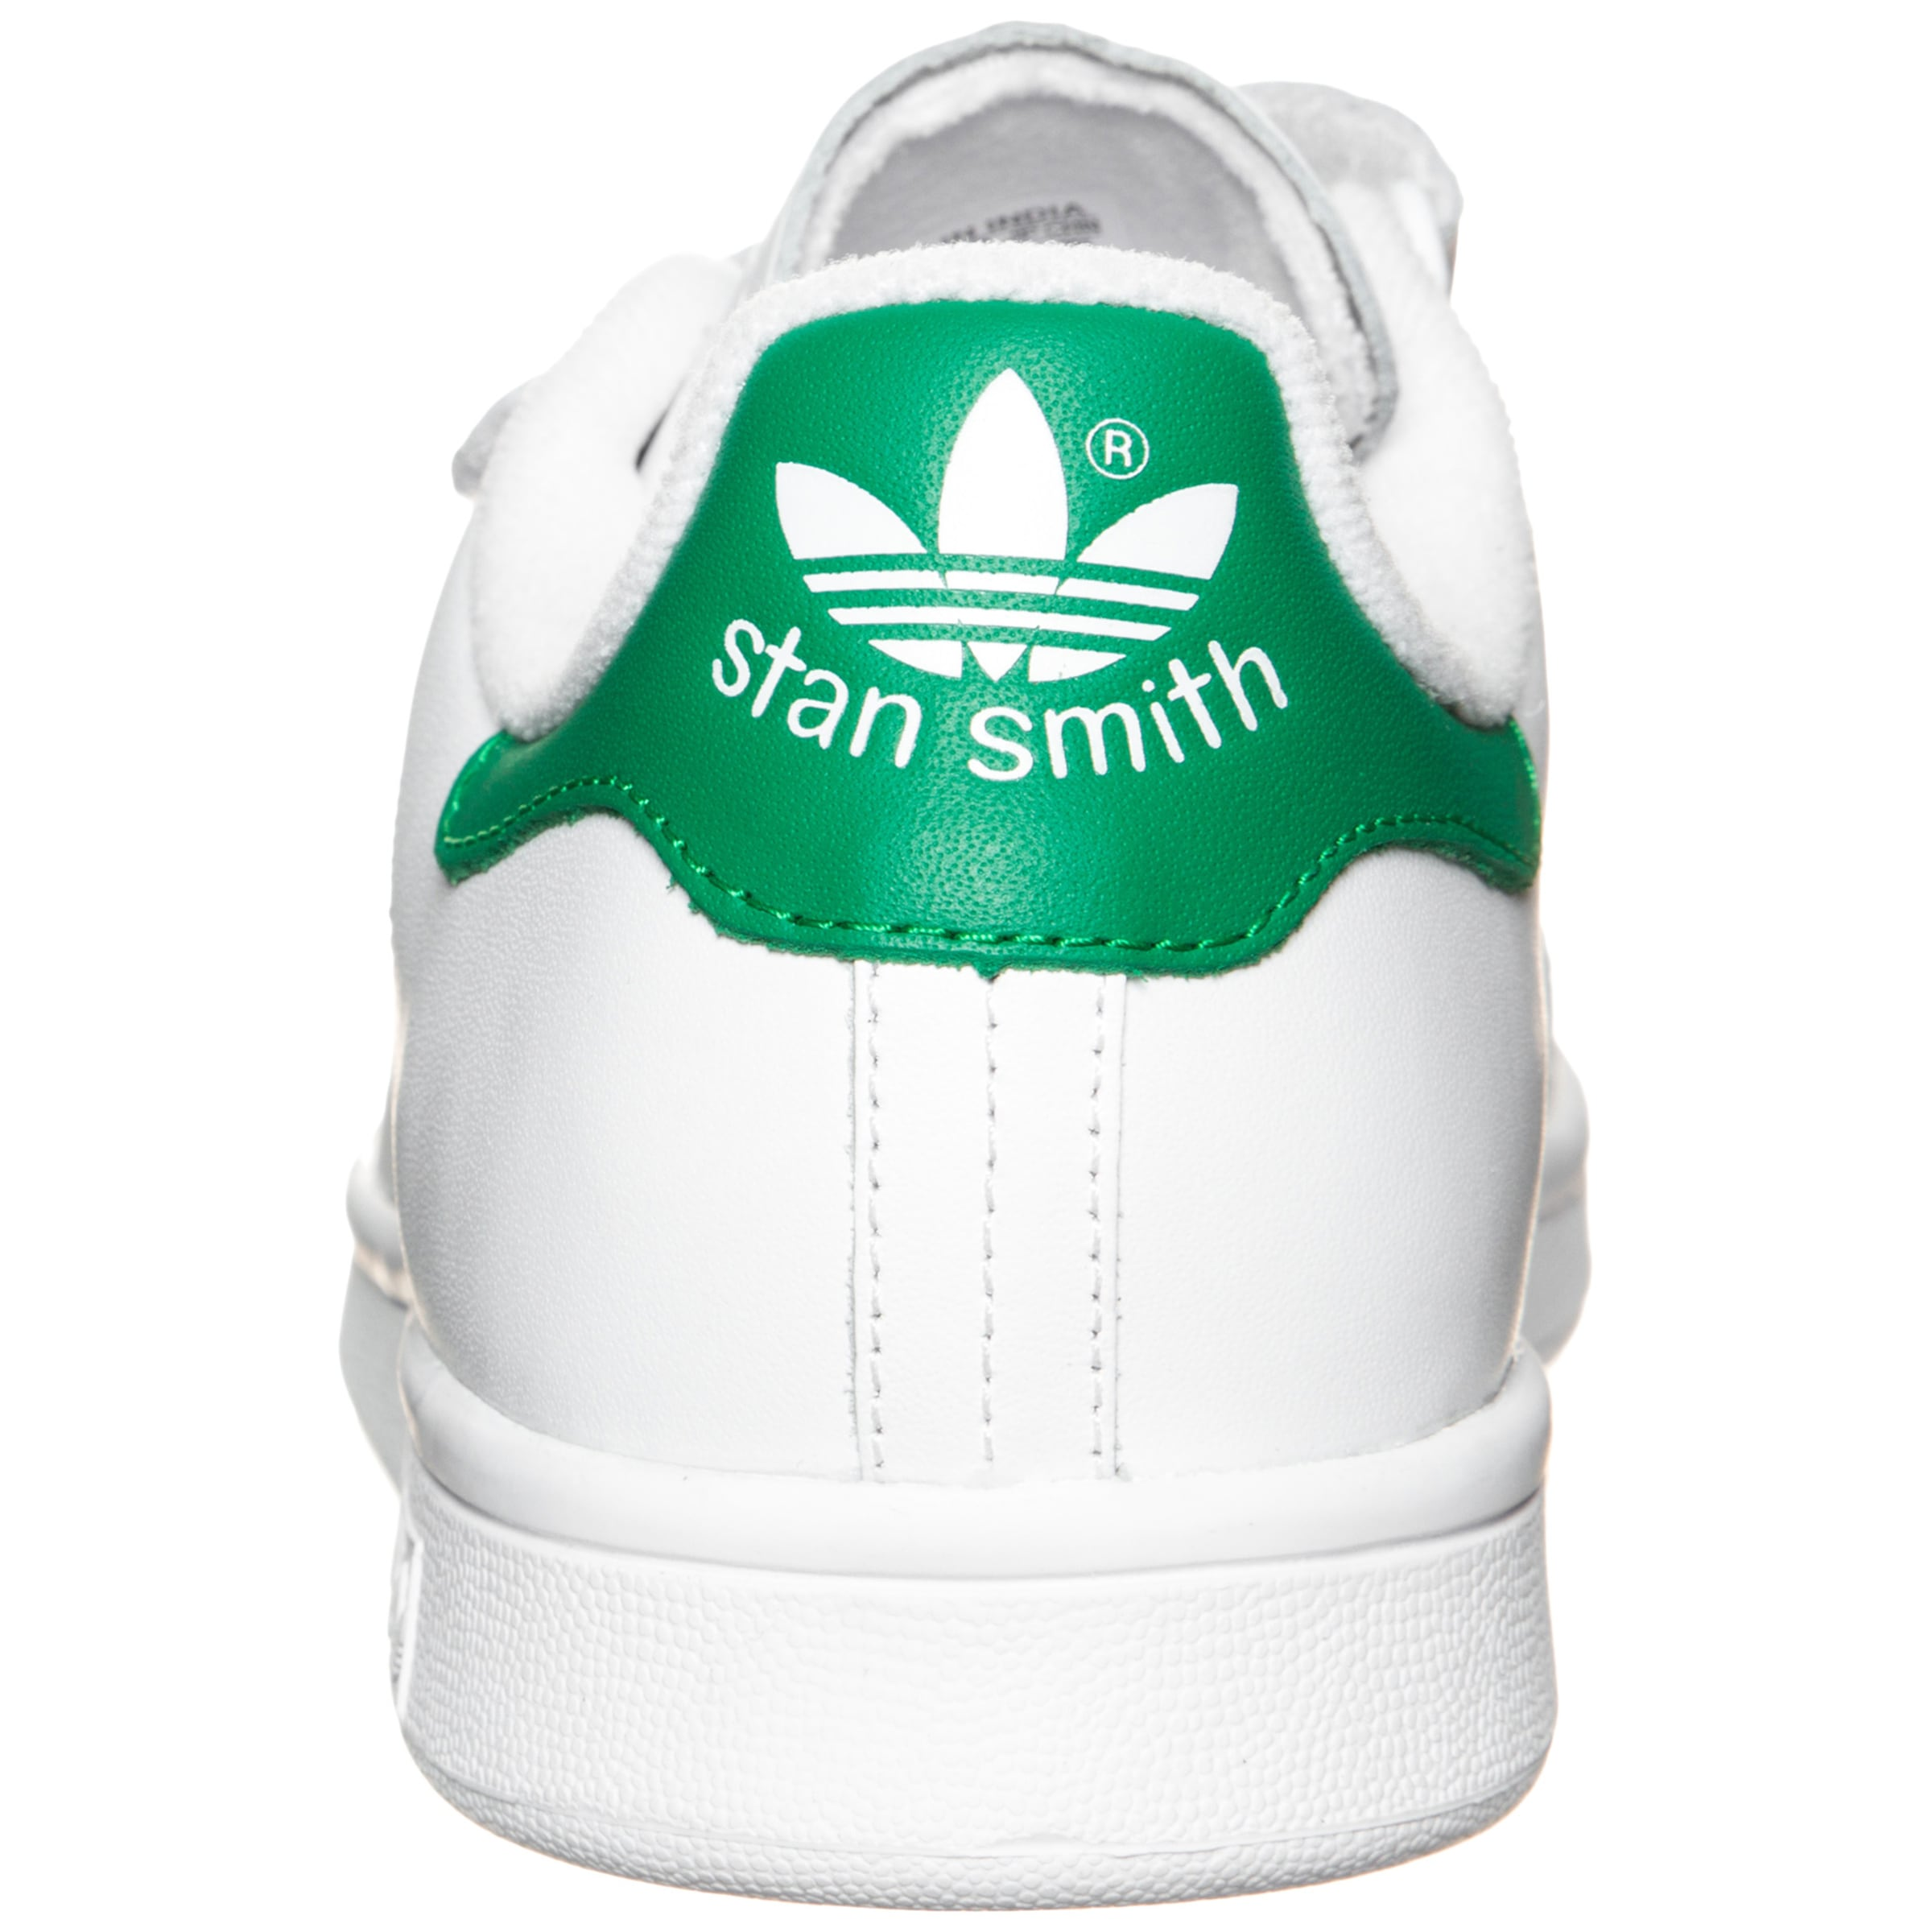 Adidas Smith Sneaker Cf' In Originals GrünWeiß 'stan PkiTXZOu